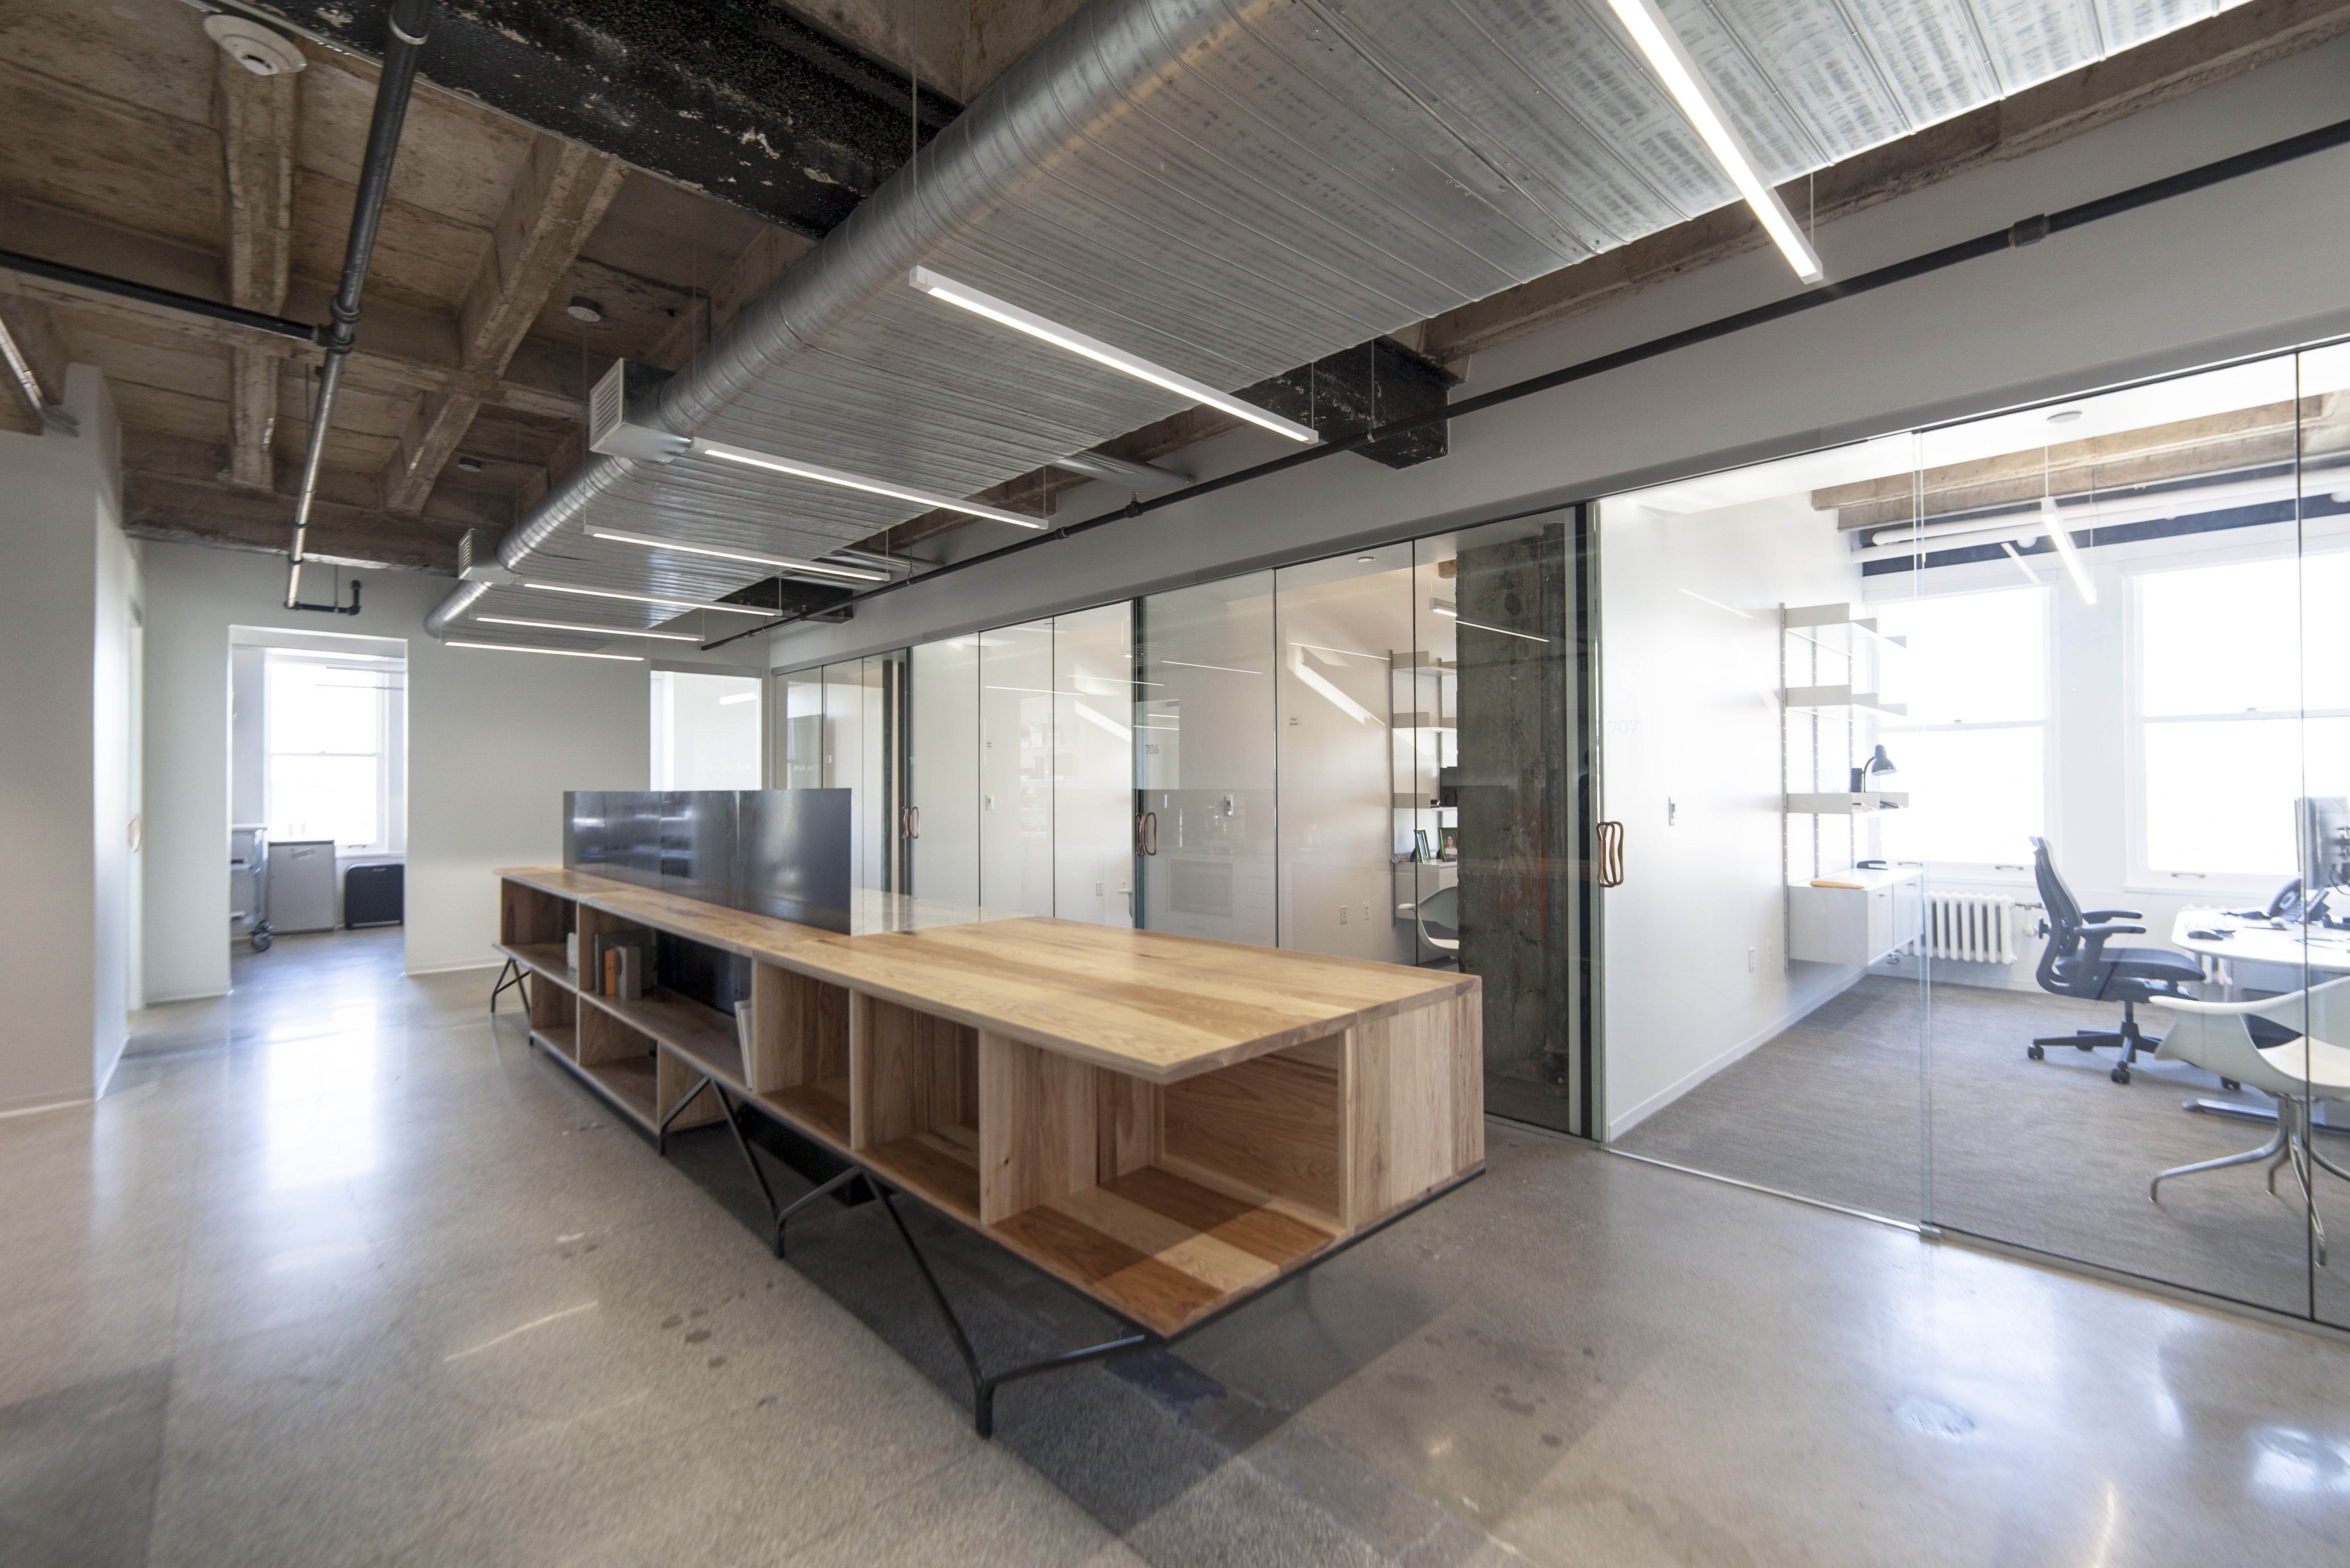 Office Island Made Of Steel And Hickory Fabricated By Synecdoche